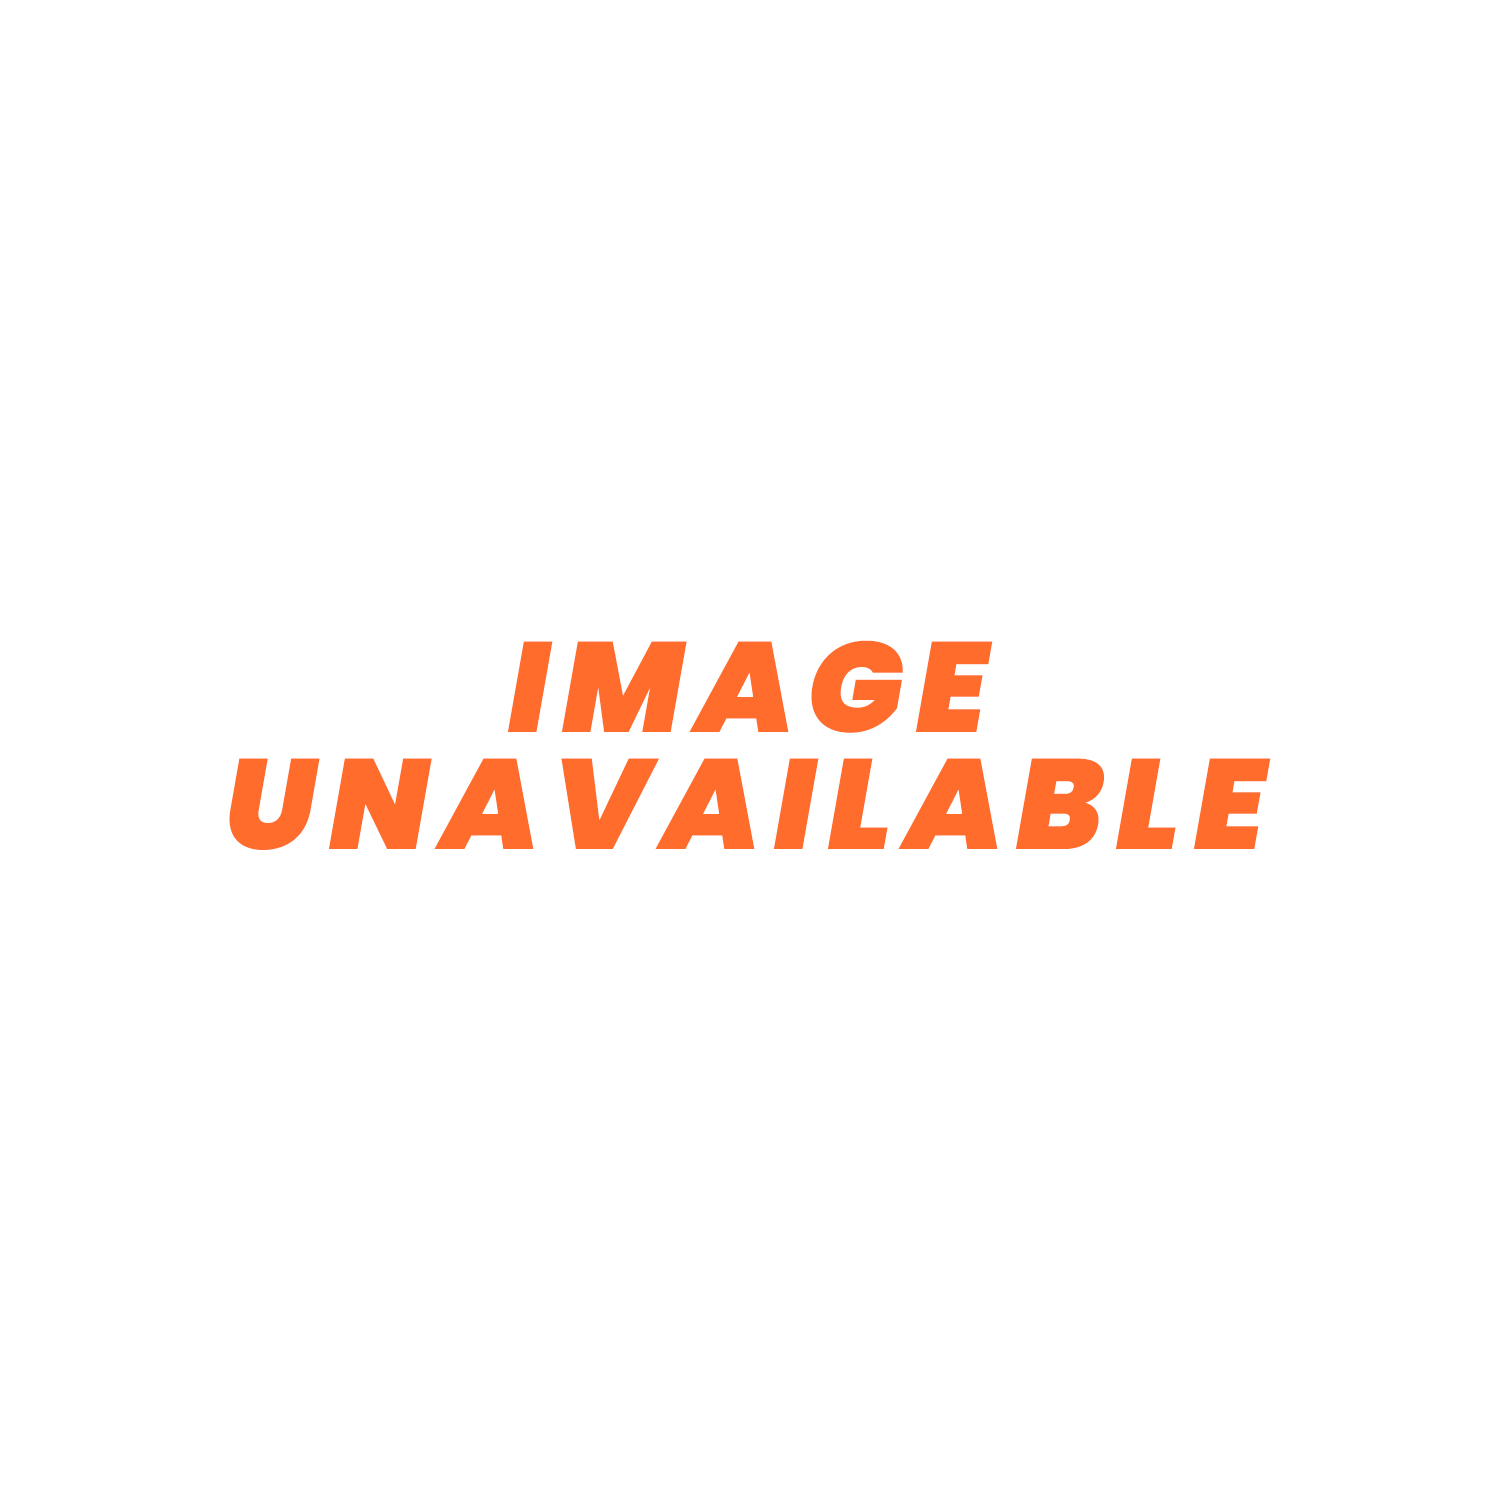 Jubilee 'O' Clip 304 Stainless Steel 13 - 15mm Dia Hose Clamp